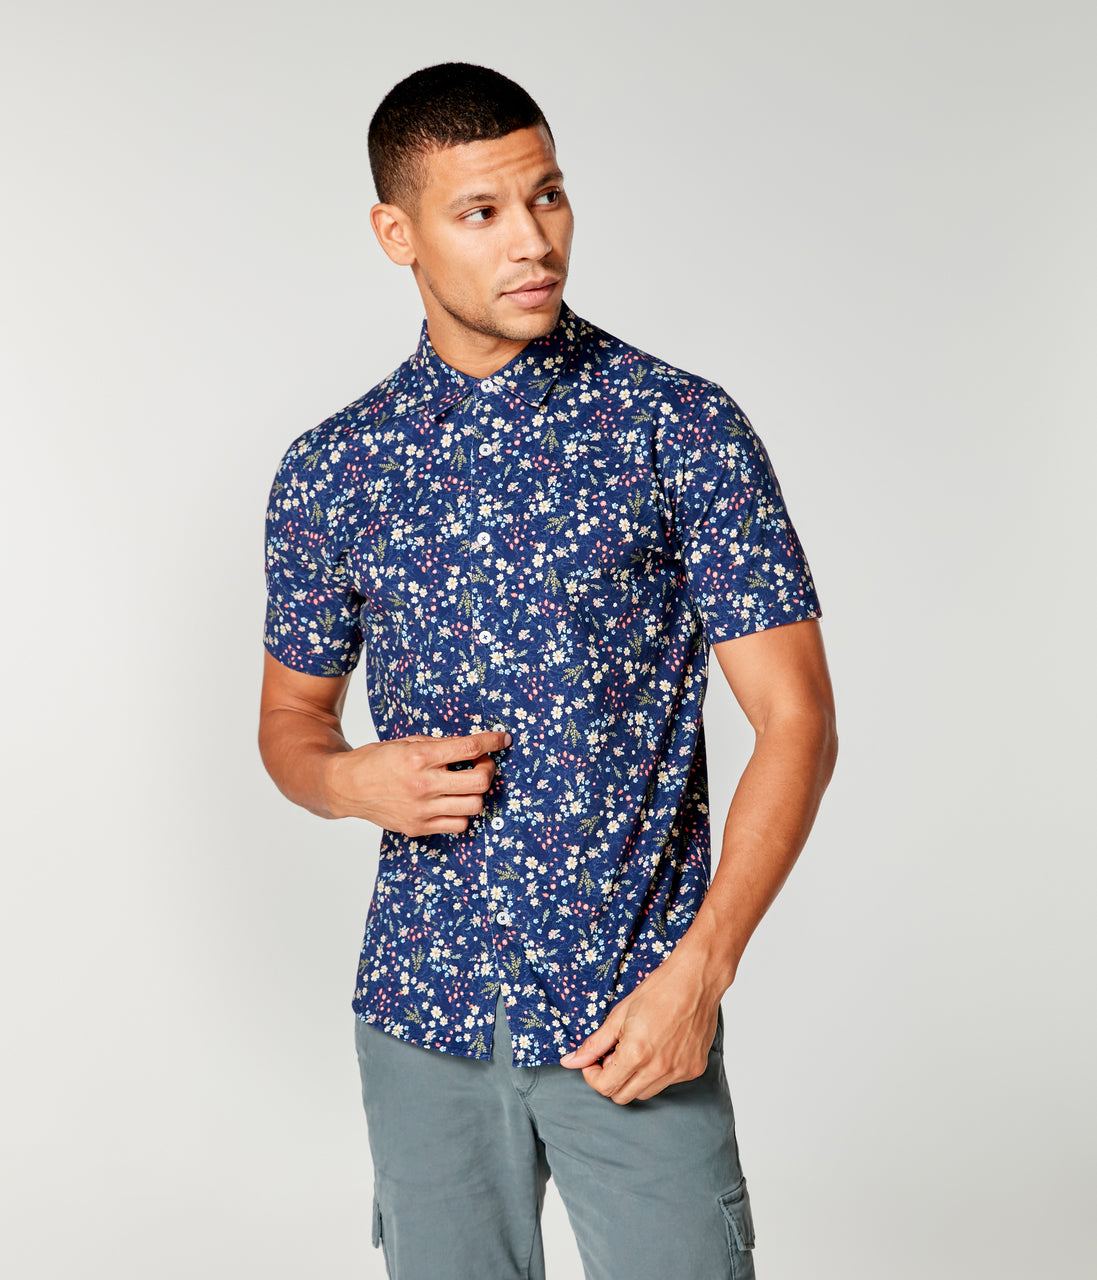 Flex Pro Lite Jersey On-Point Shirt - Blue Hanabira Blooms - Good Man Brand - Flex Pro Jersey Printed Soft Shirt - Blue Hanabira Blooms